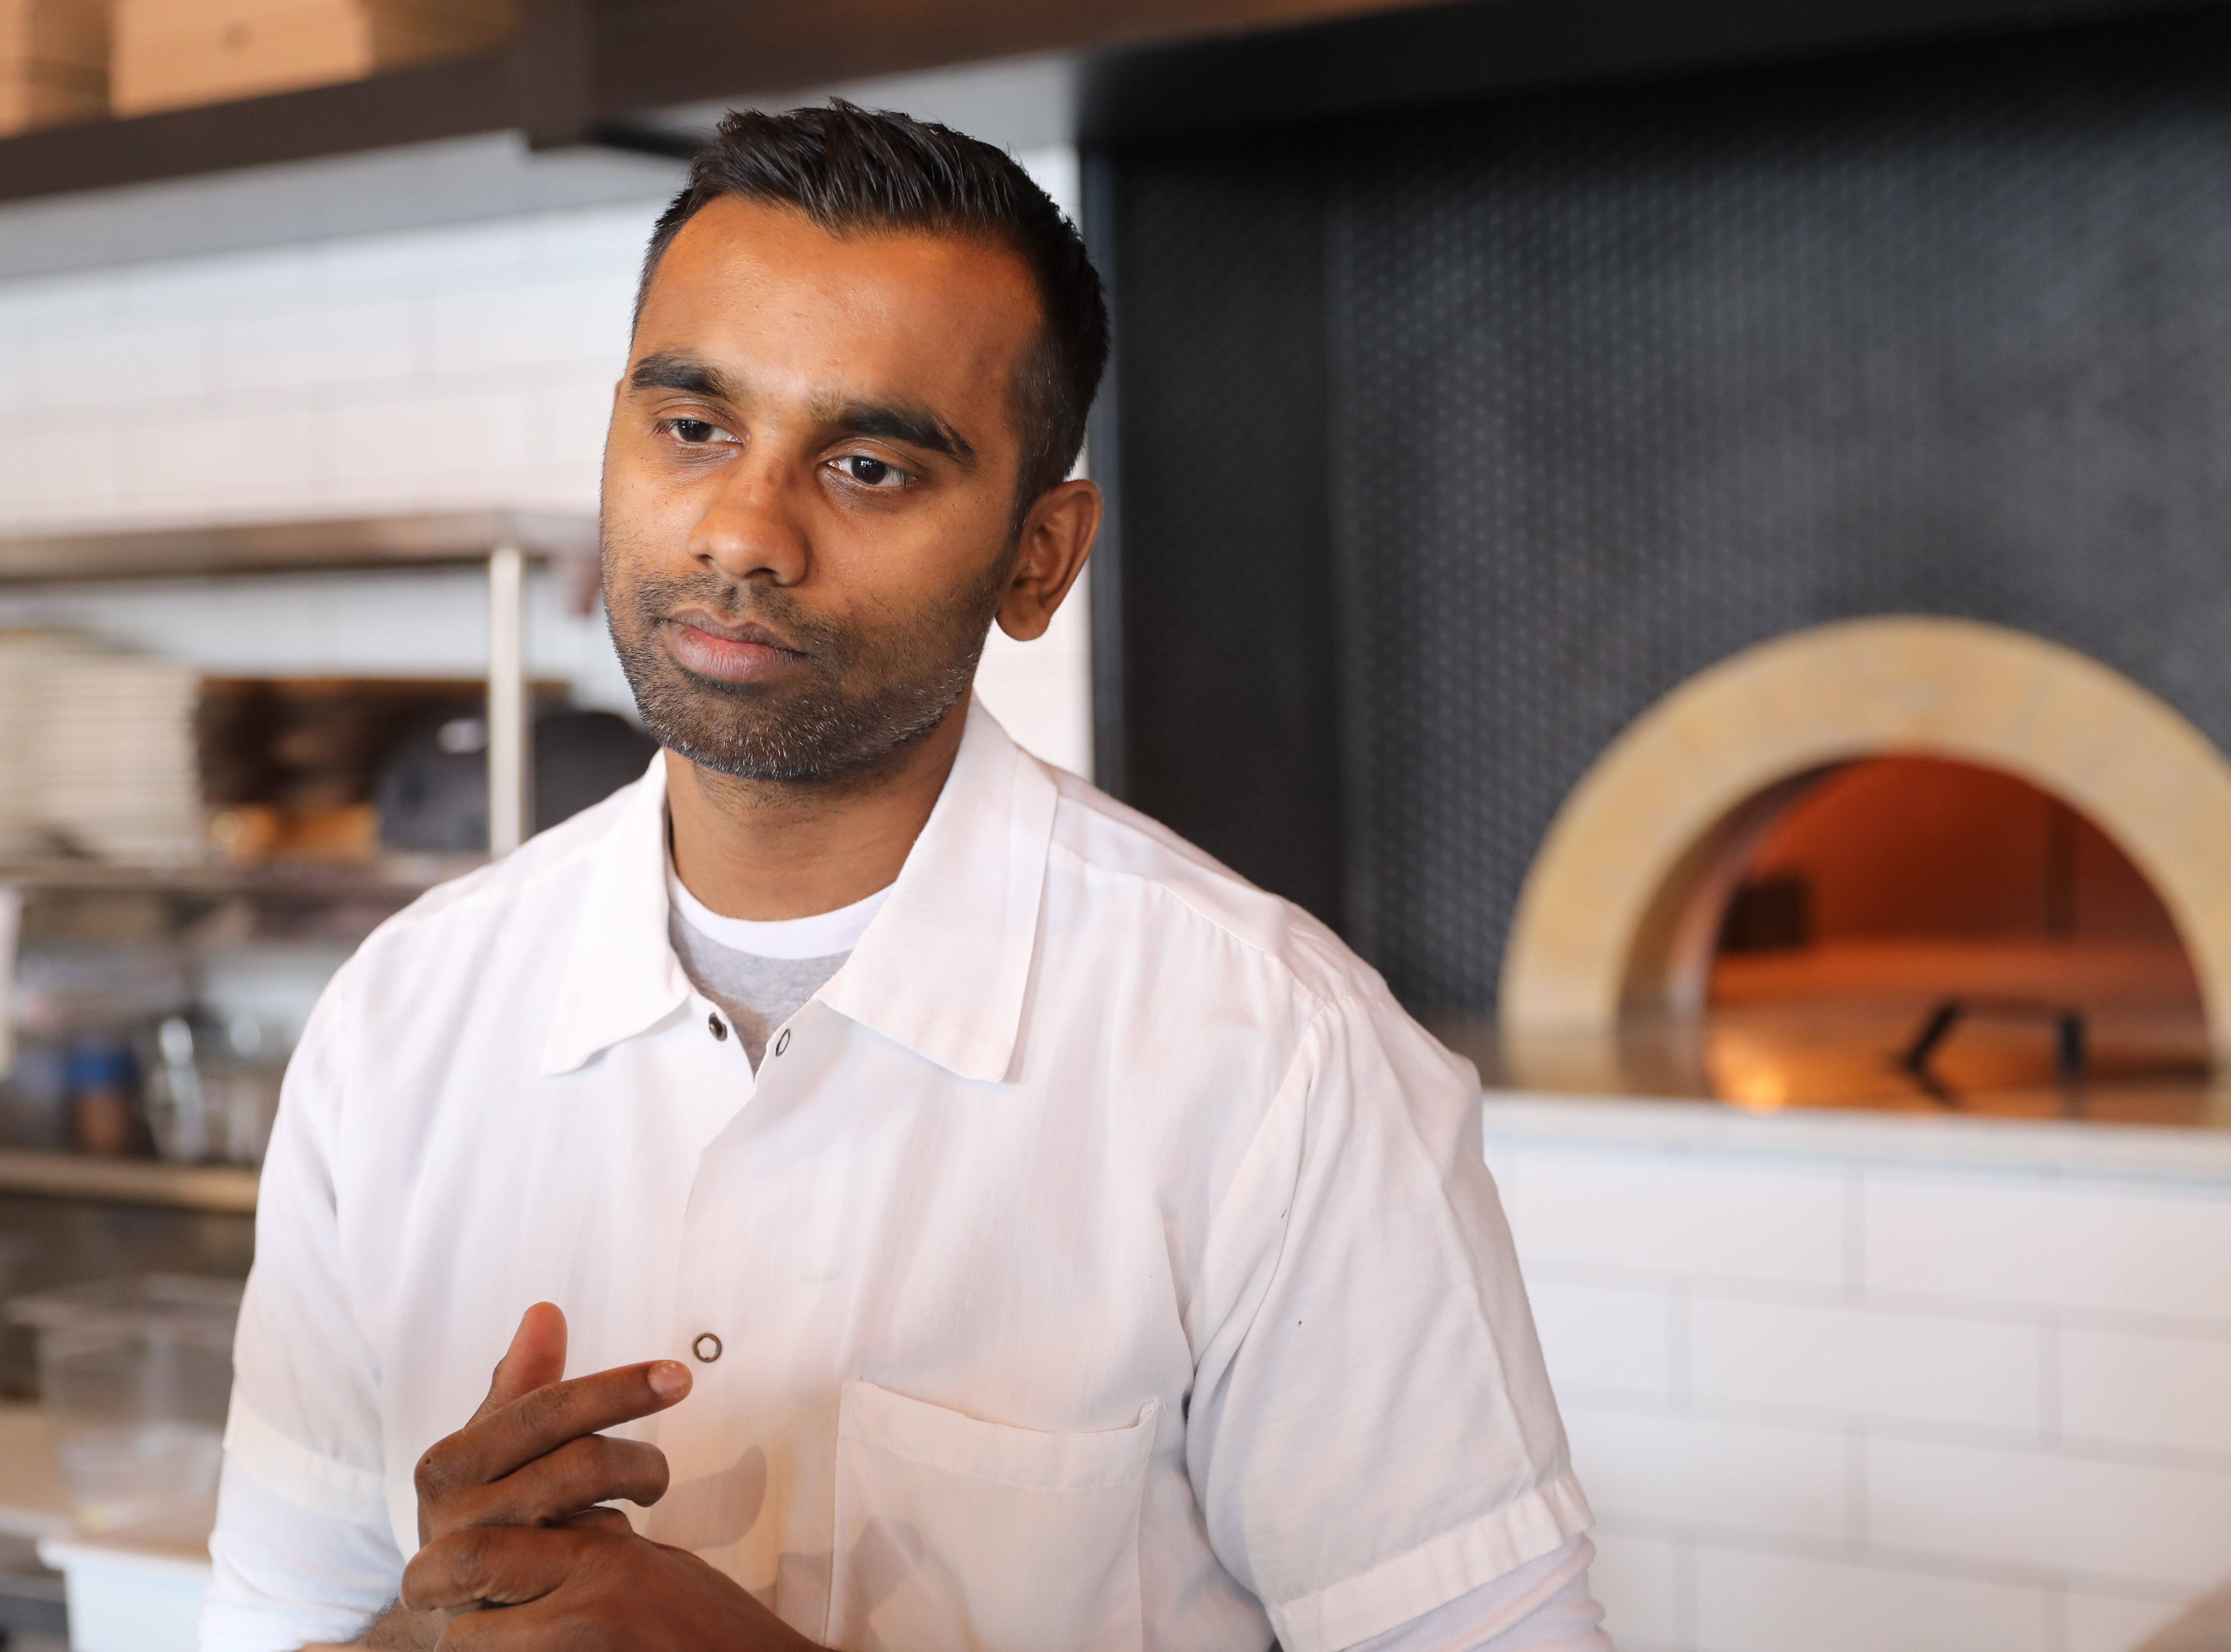 Executive Chef Mogan Anthony from Village Social Restaurant Group is pictured at Locali Pizza Bar and Kitchen in the Mount Kisco, March 8, 2019.